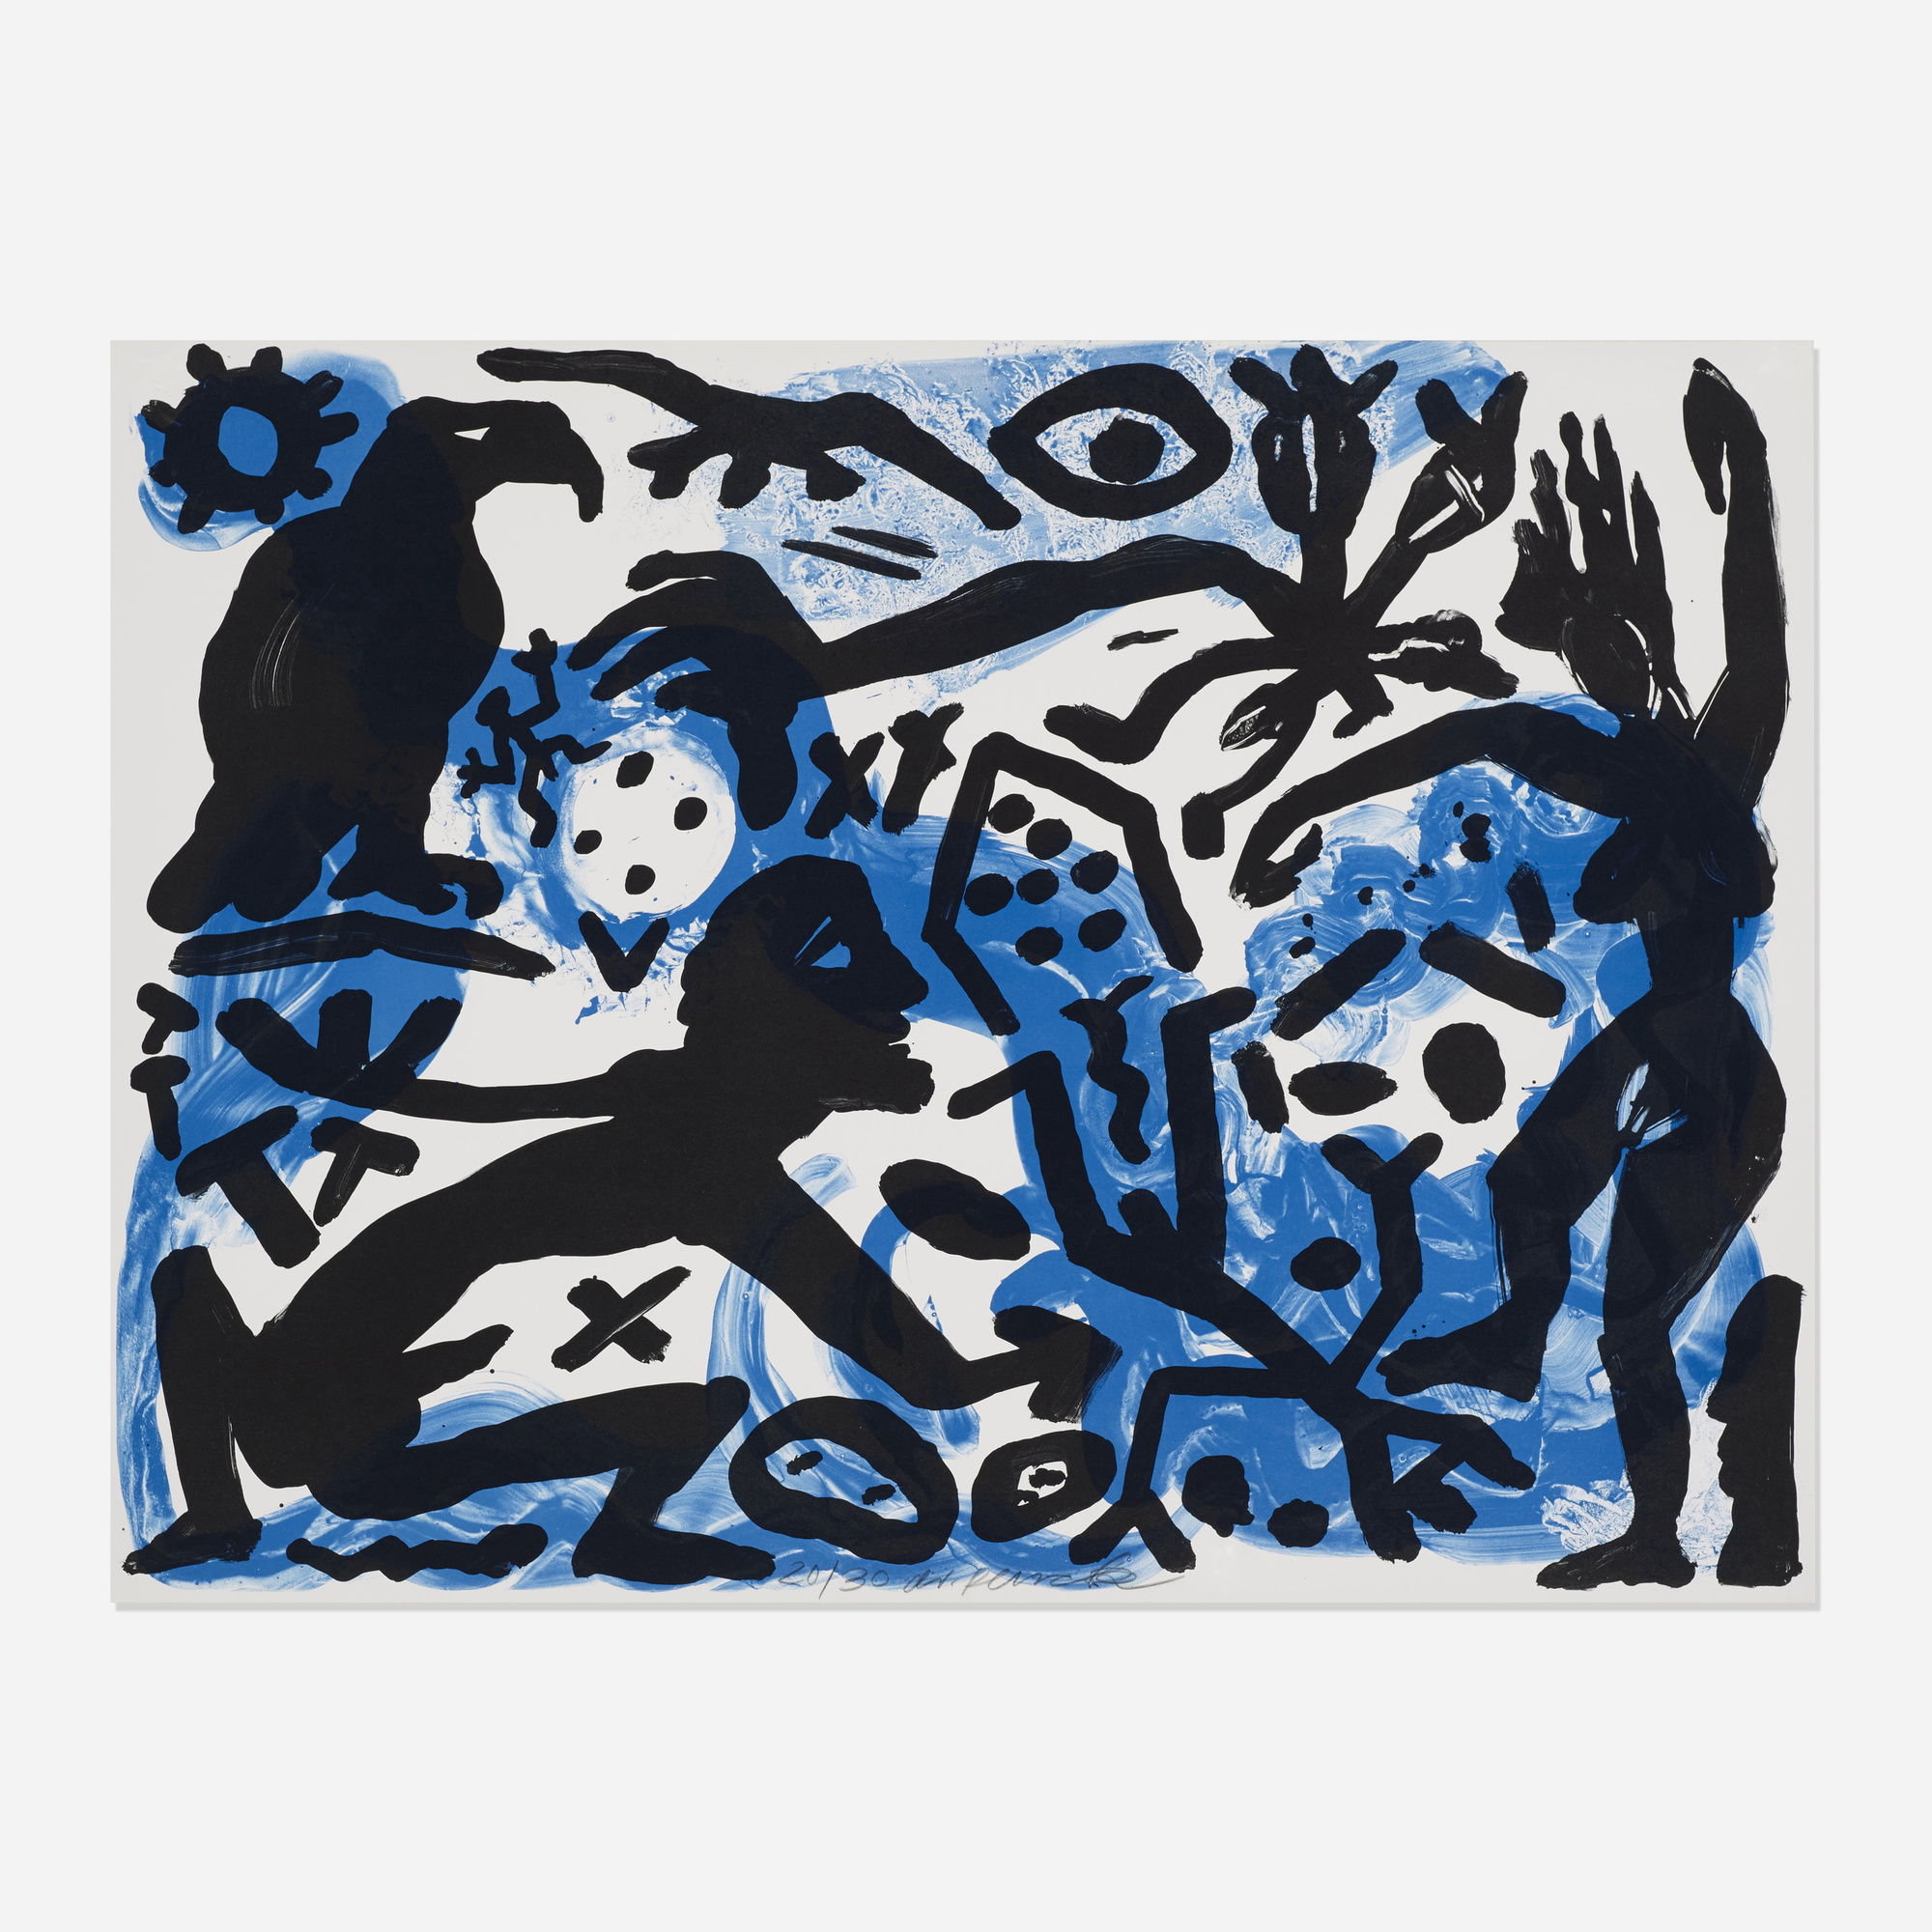 219: A. R. Penck / The Situation Now (Night) (1 of 3)